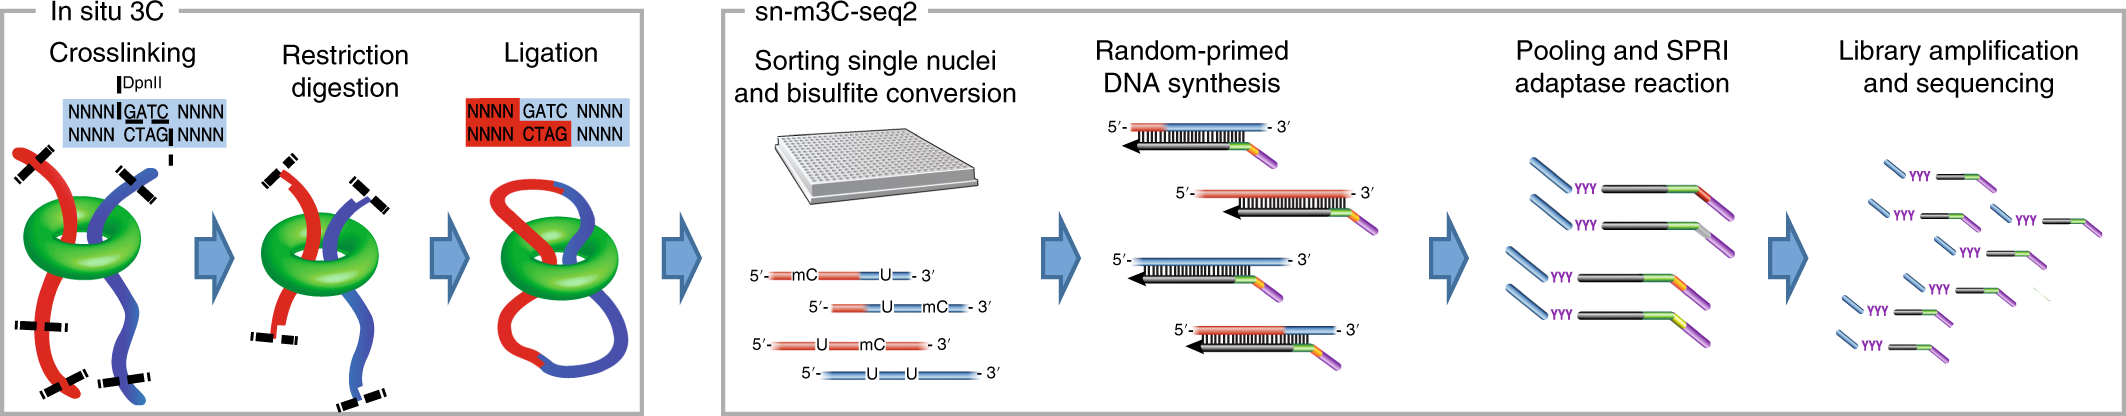 Simultaneous profiling of 3D genome structure and DNA methylation in s